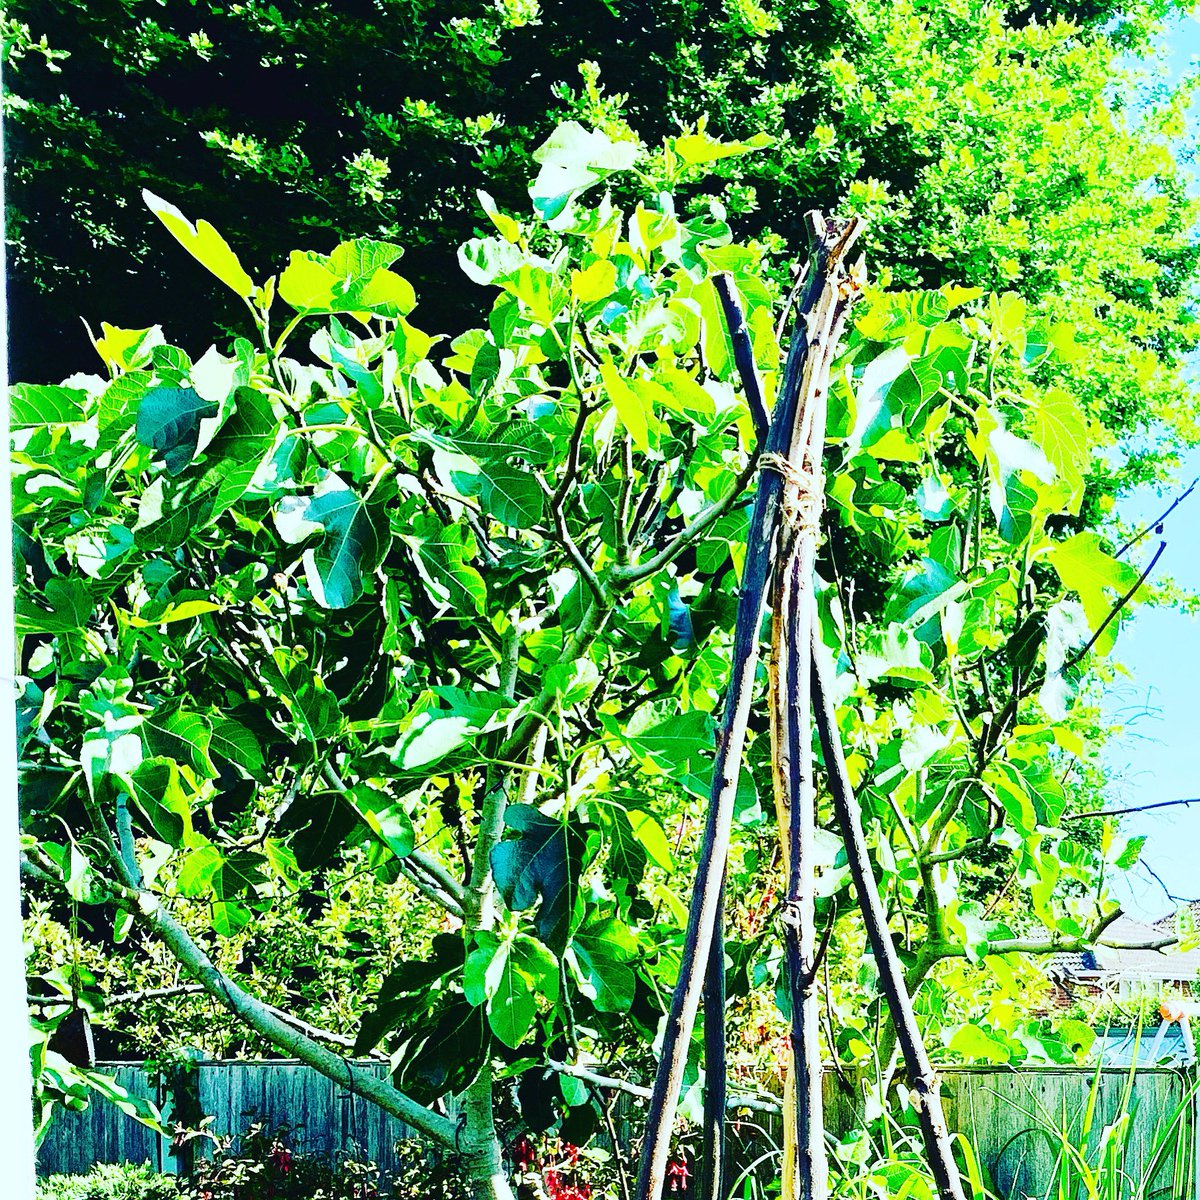 Garden canes in situ for wild sweetpeas loving the sculptural and natural vibe in the garden! pic.twitter.com/t40GNJ2cRv